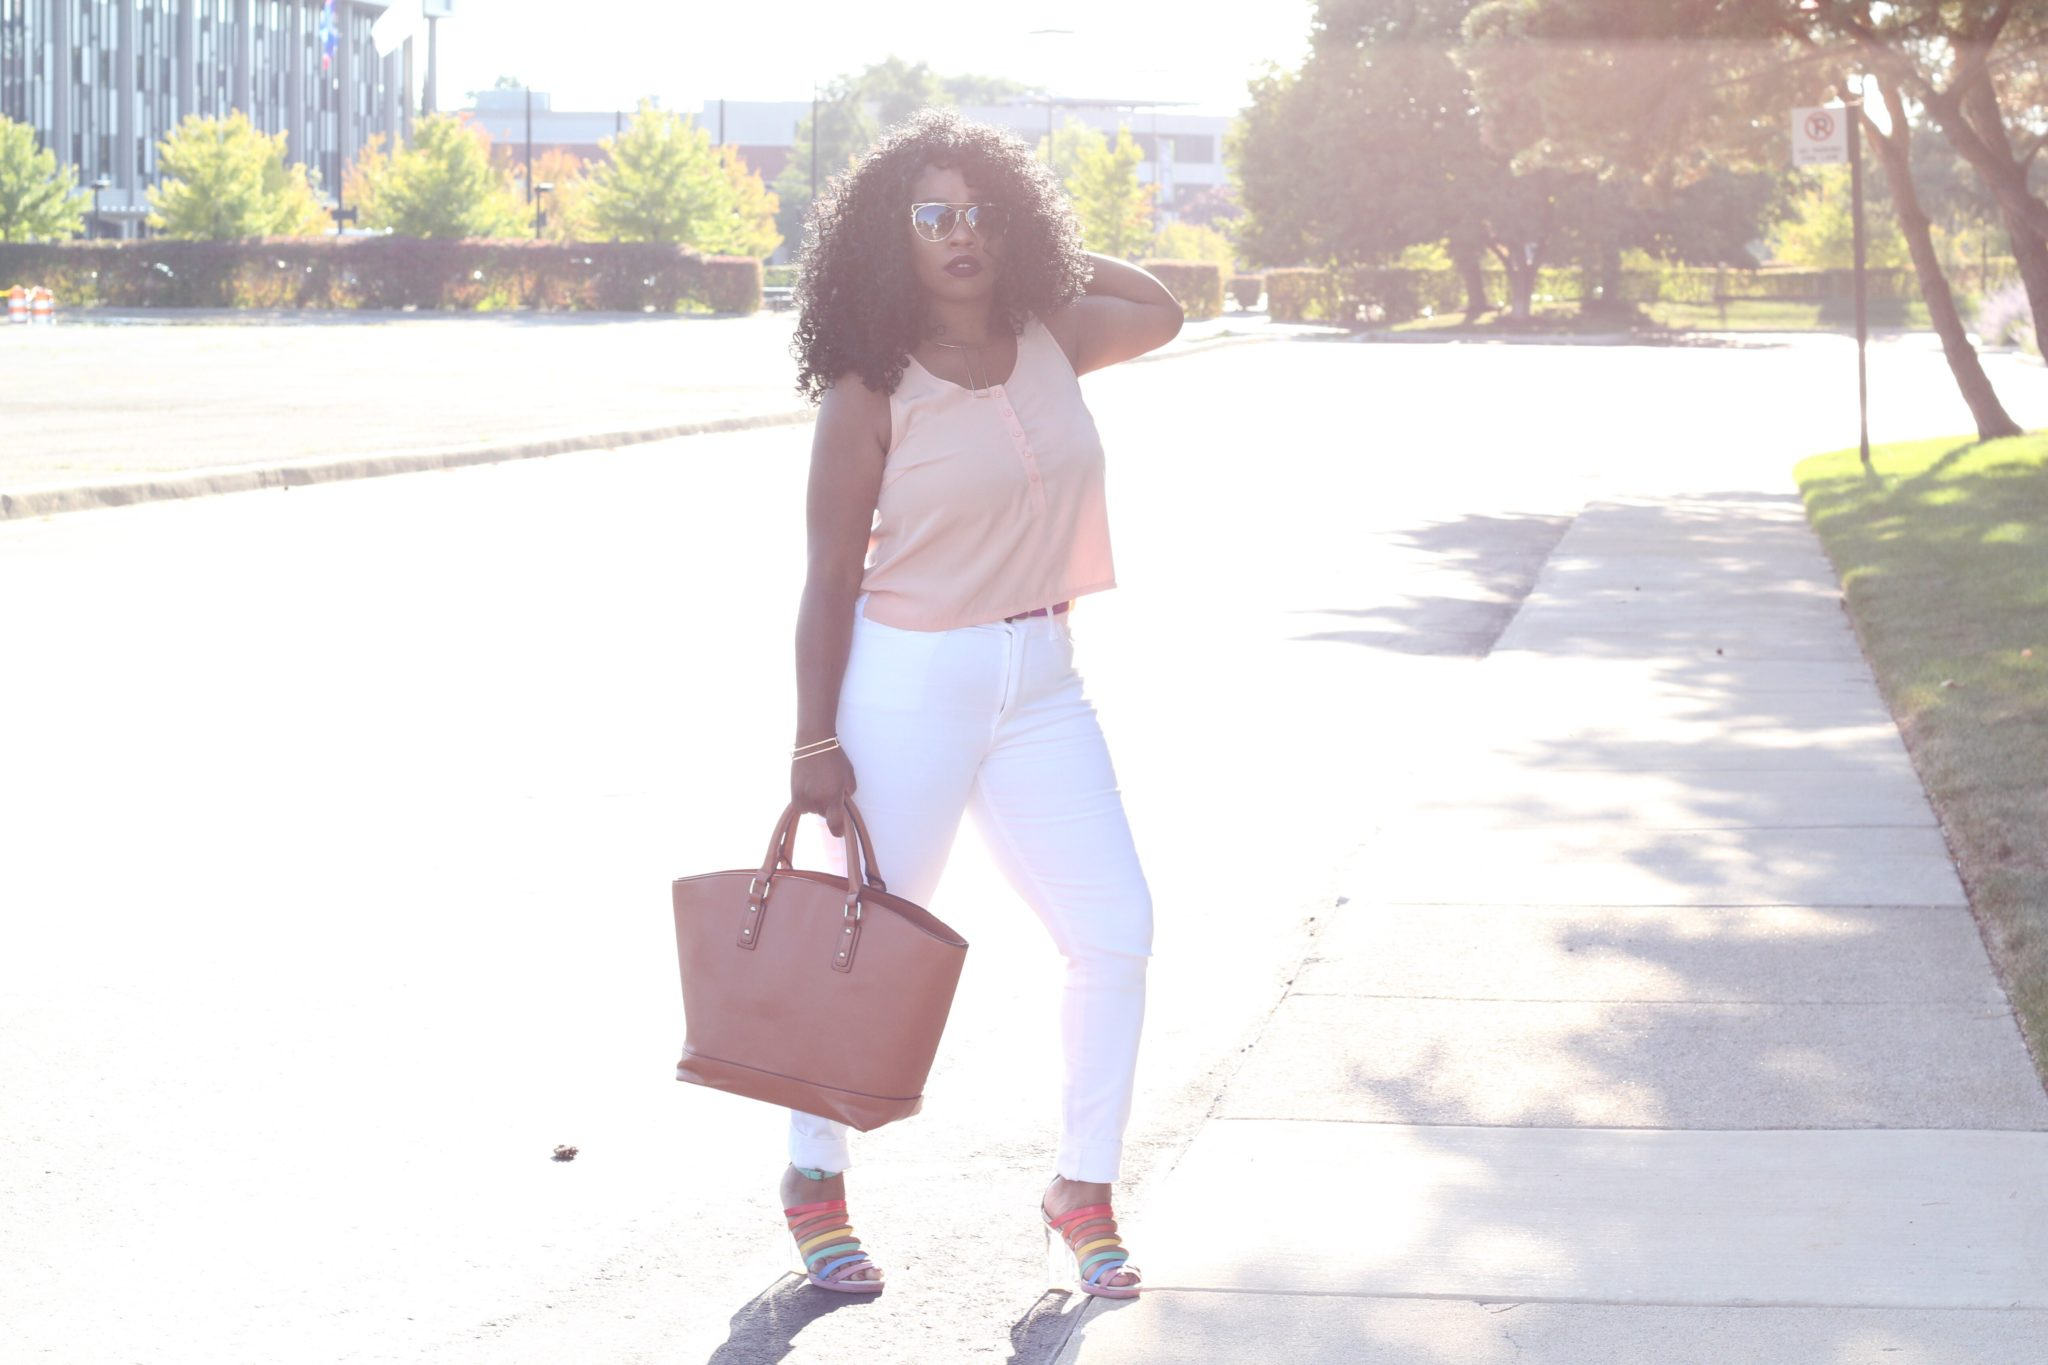 publish_snapshot-14 Living for the Weekend! Fashion Fashion Nova Forever 21 Jeffrey Campbell Shoes Justfab OOTD Styling Thrifting Uncategorized